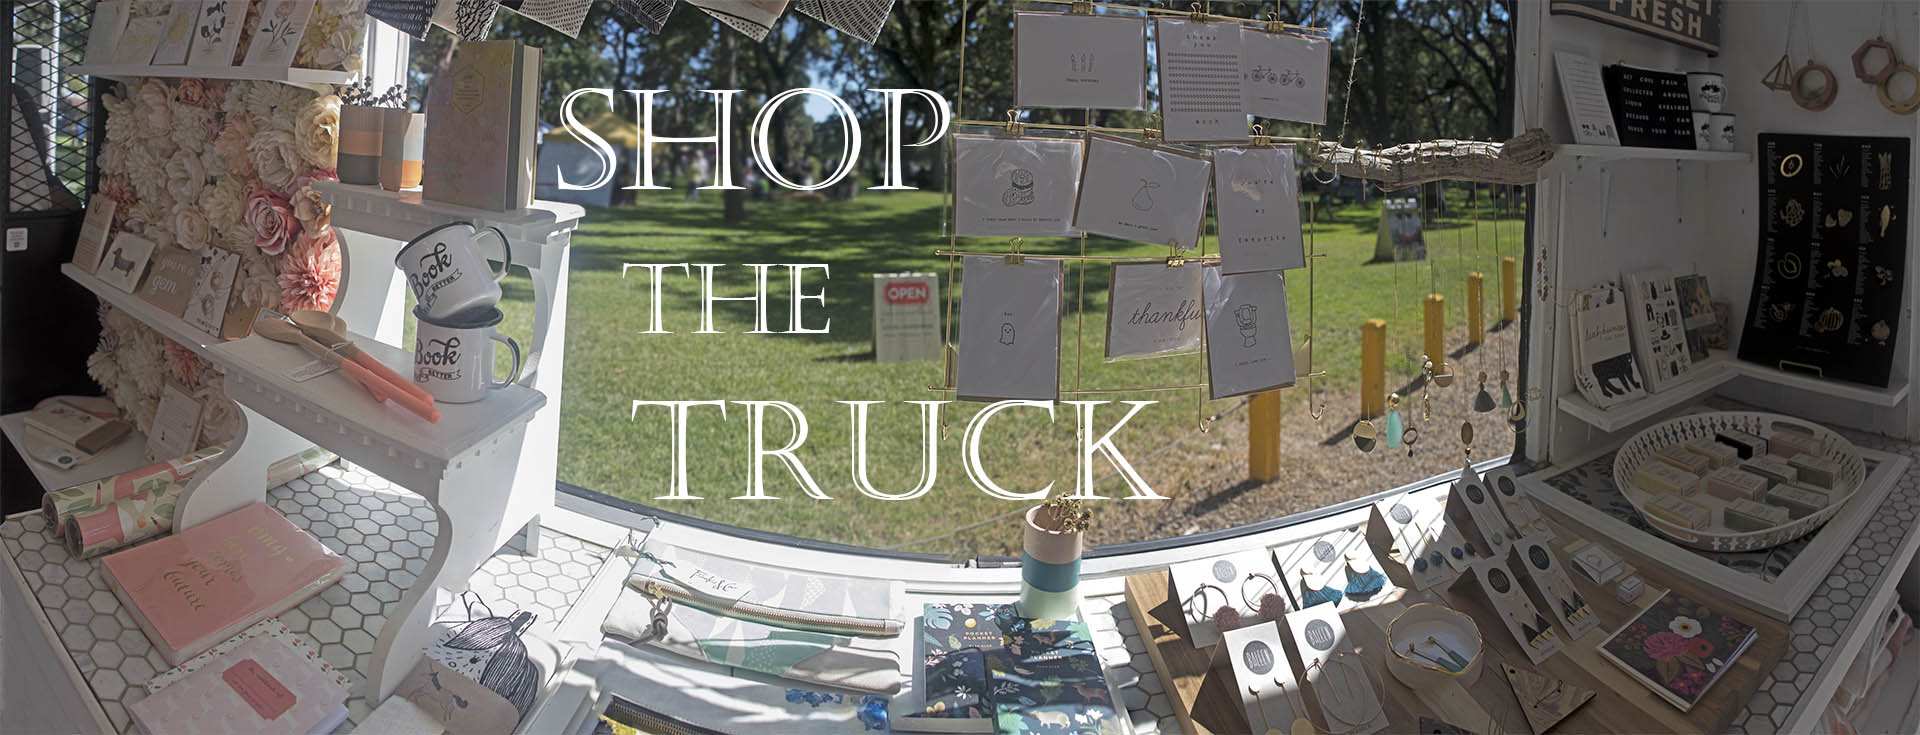 Shop the Bloom Truck